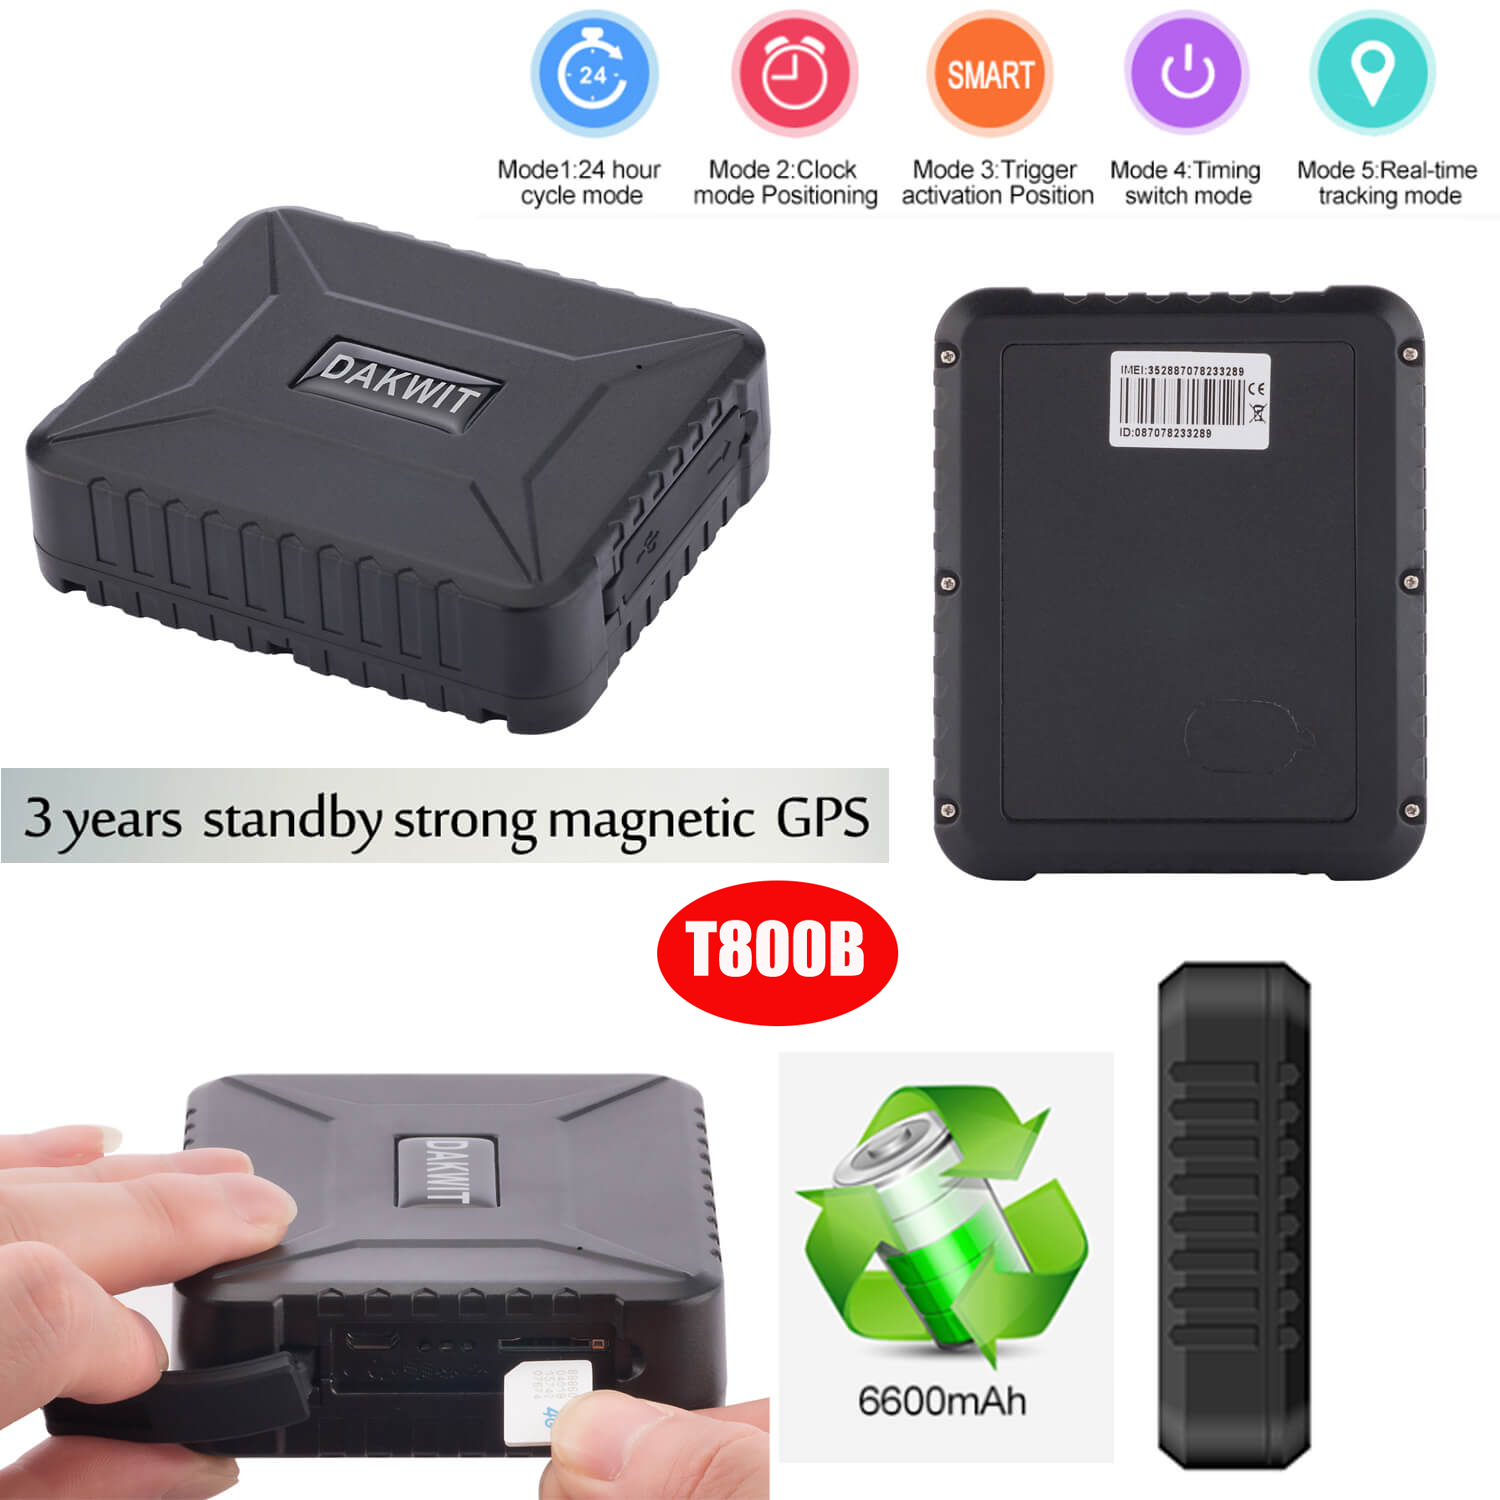 3 Year Standby Vehicle GPS Tracker with Strong Magnetic T800b